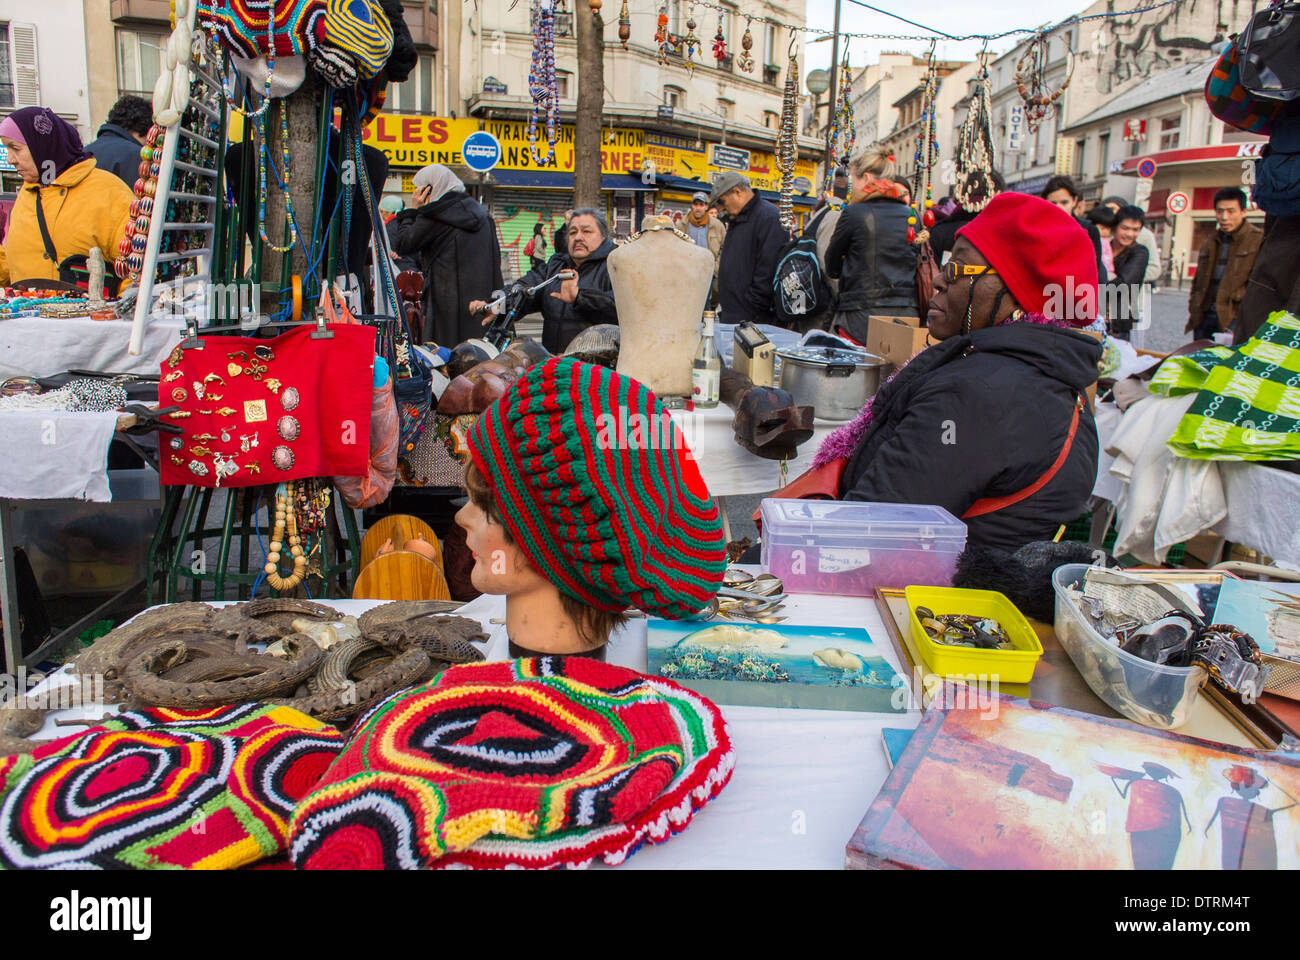 Paris, France., People Shopping French Flea Market in Belleville Area, African Woman Selling Hand Made Fashion Products, Knit Hats - Stock Image